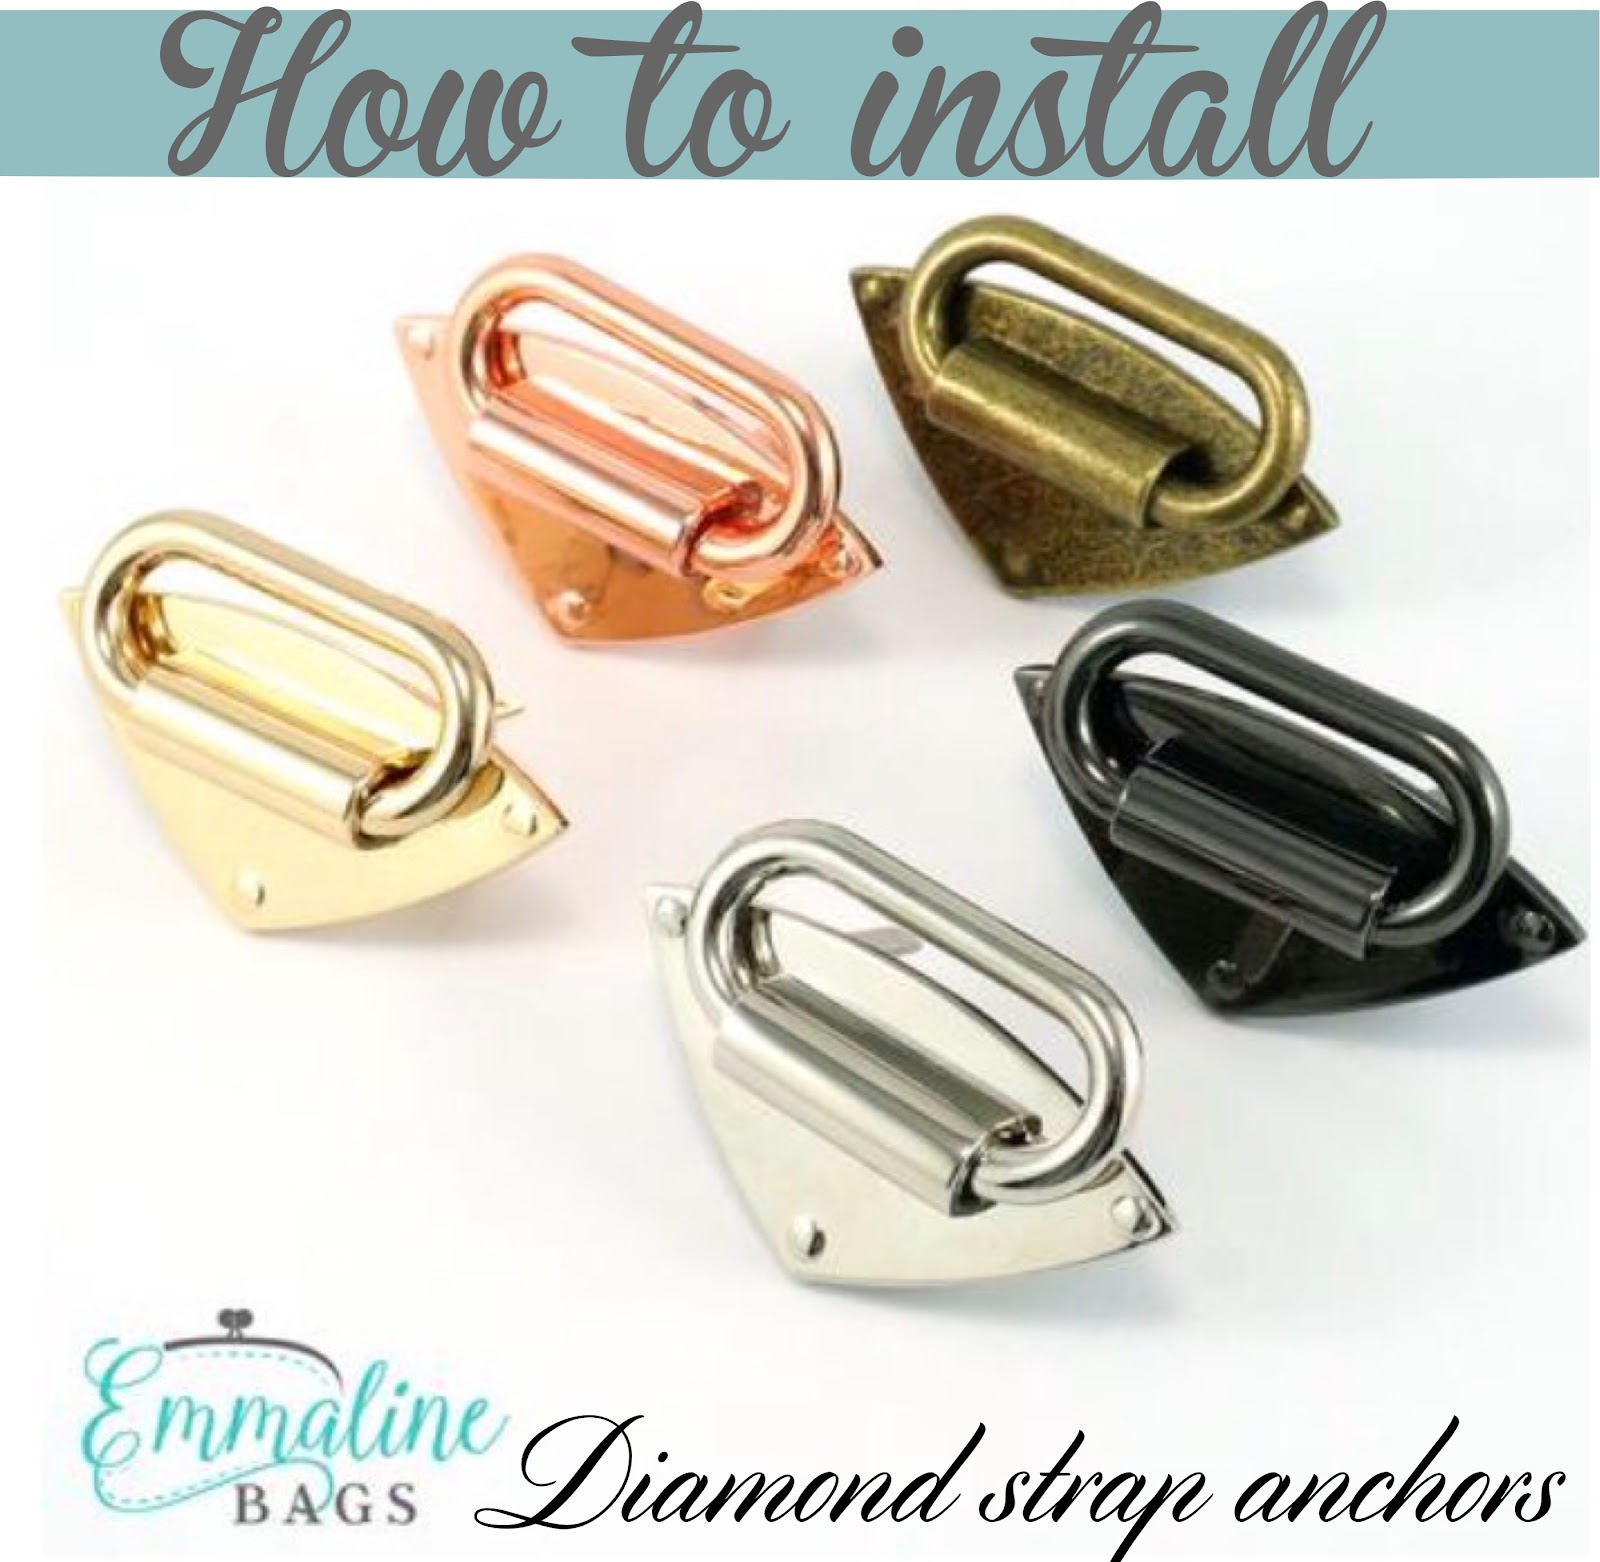 How to install our Emmaline Bags Diamond Strap Anchors in handmade Bags.